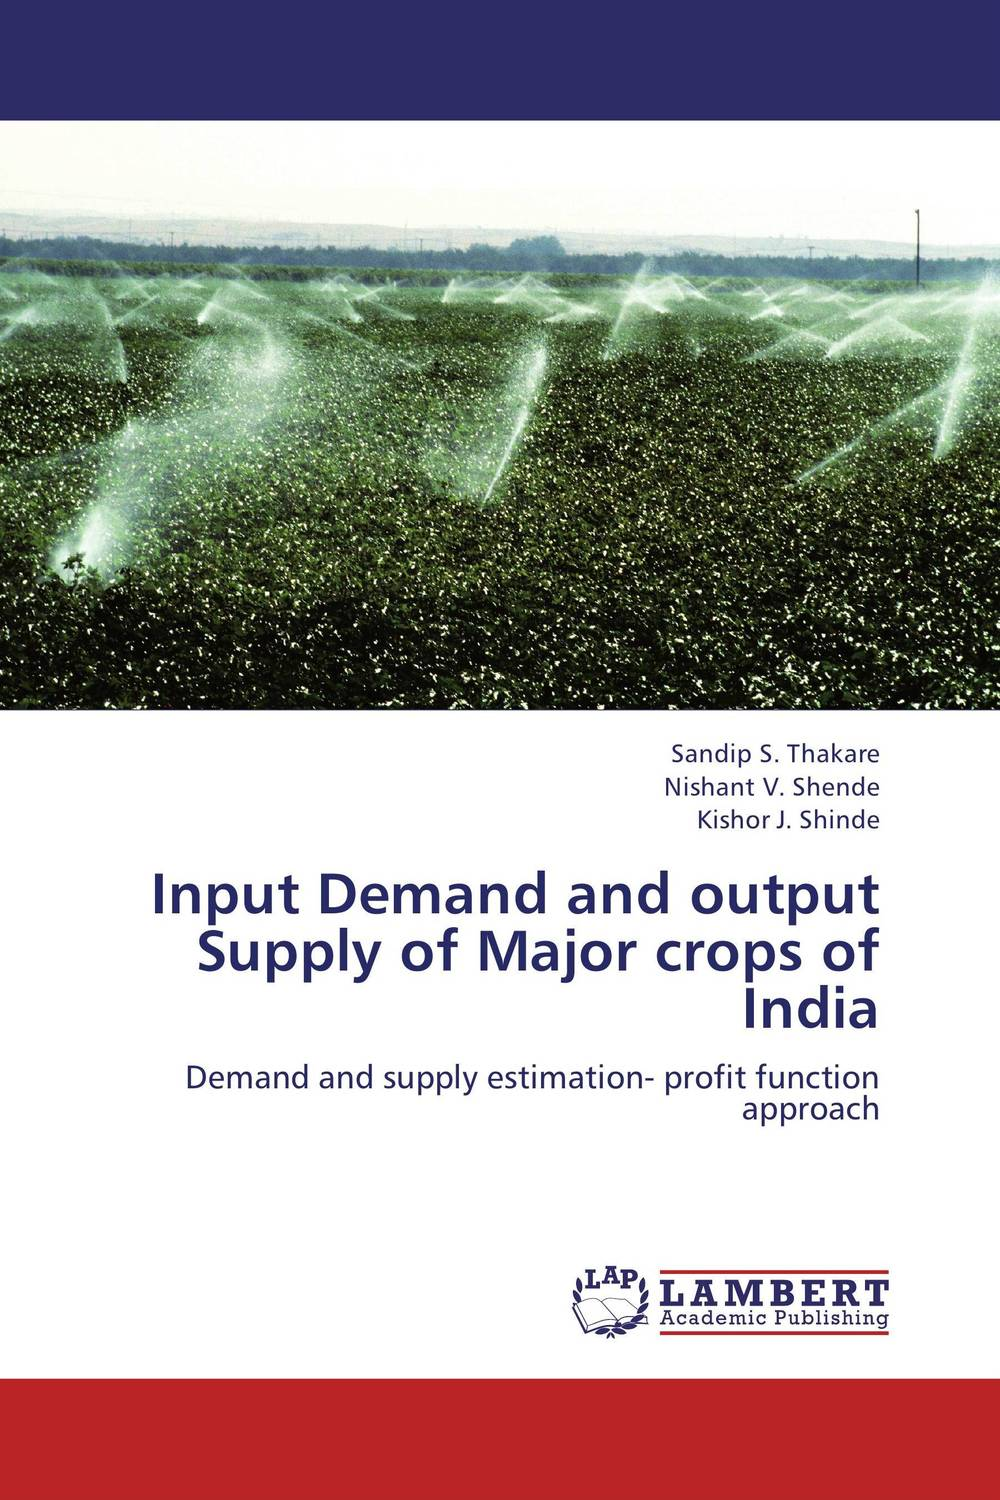 Input Demand and output Supply of Major crops of India comfortable computer chair office furniture chair e sports chair home ergonomic chair